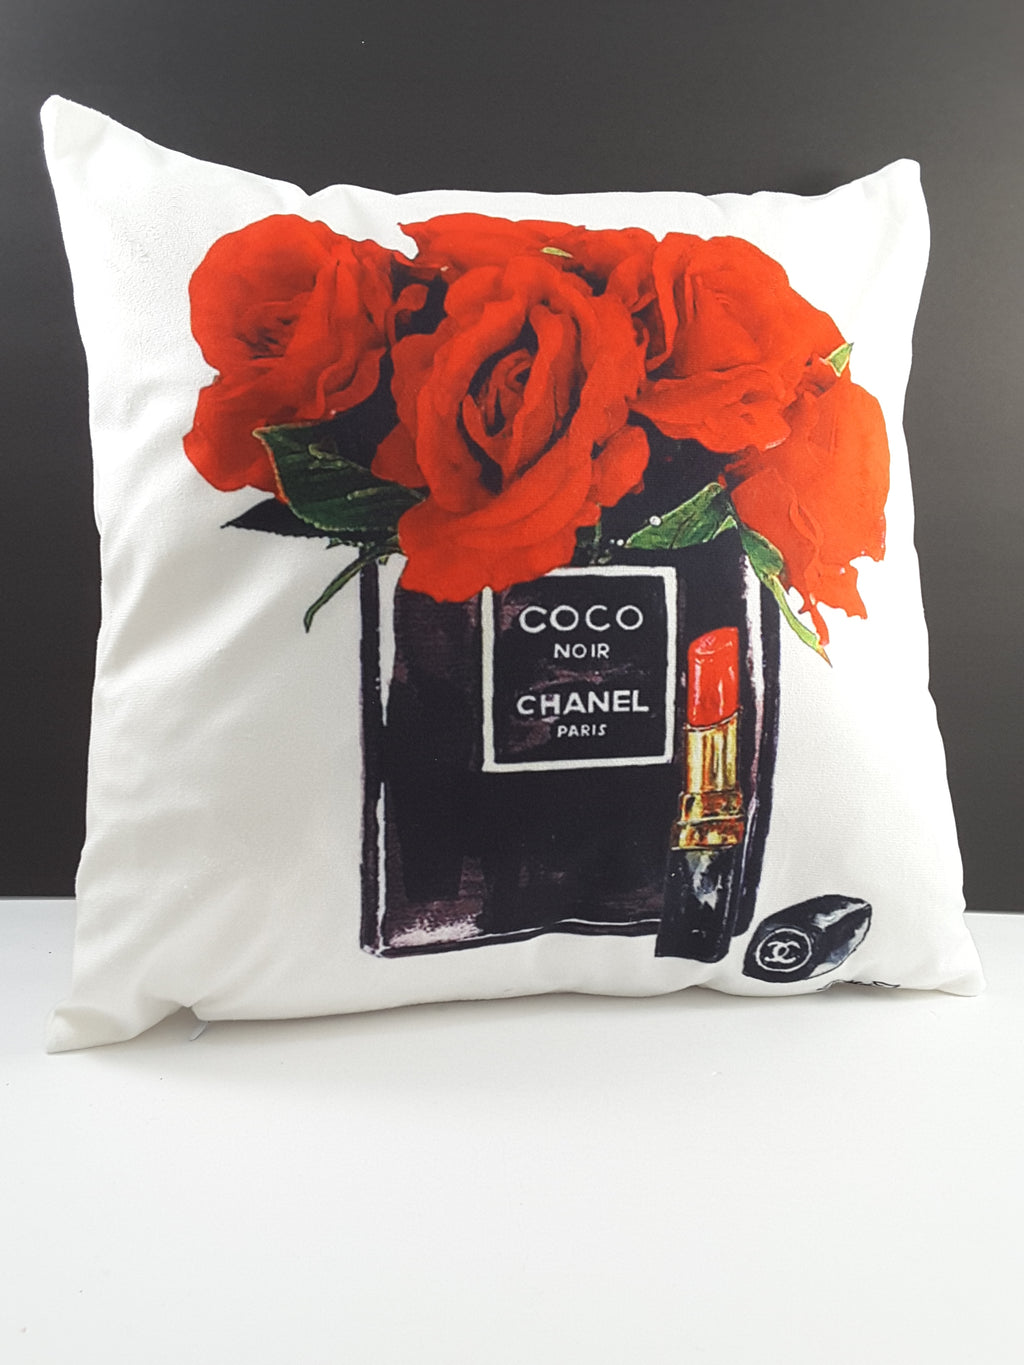 Pillow Cover with Bright Red Roses and Perfume - Free Shipping! - TheLastWordBish.com